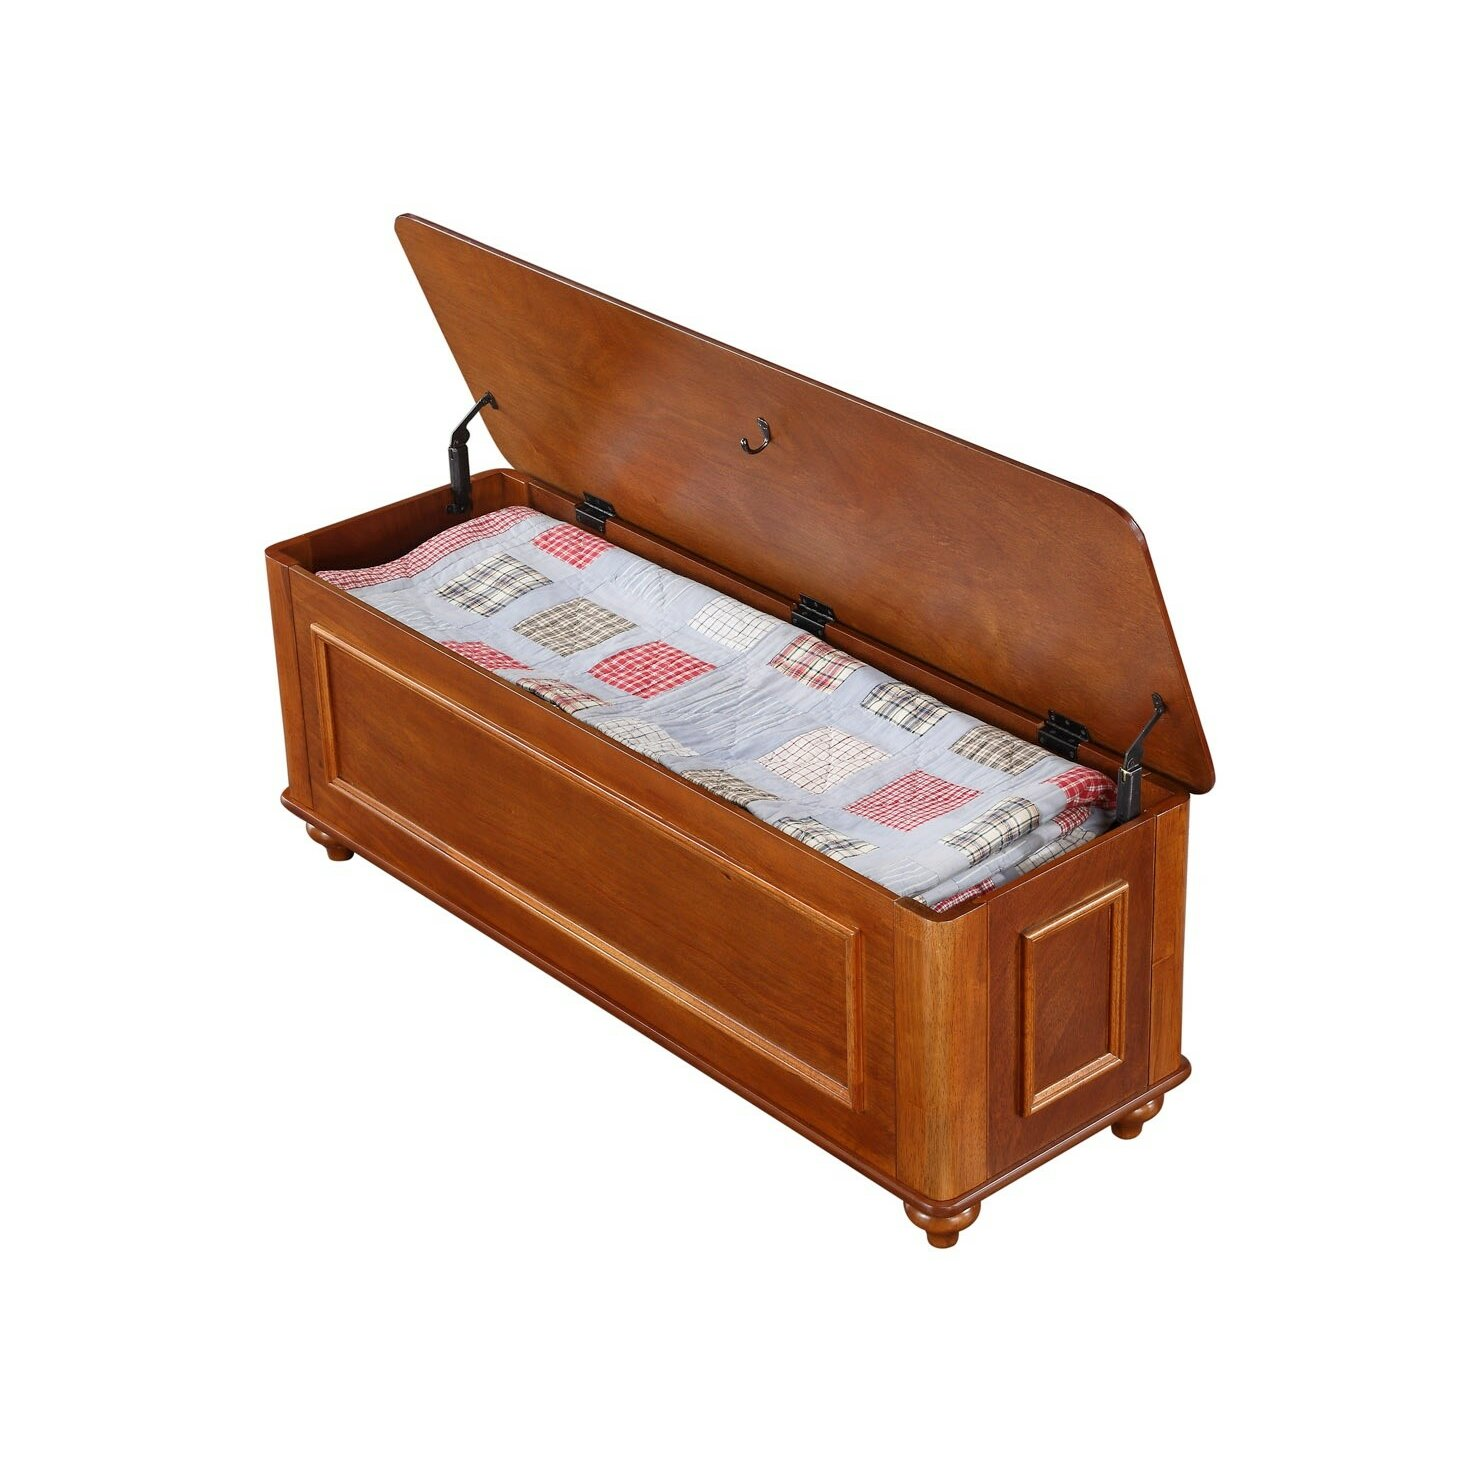 American Furniture Classics Hope Chest amp Reviews Wayfair : Hope2BChest2Bwith2BGun2BConcealment from www.wayfair.com size 1474 x 1474 jpeg 246kB